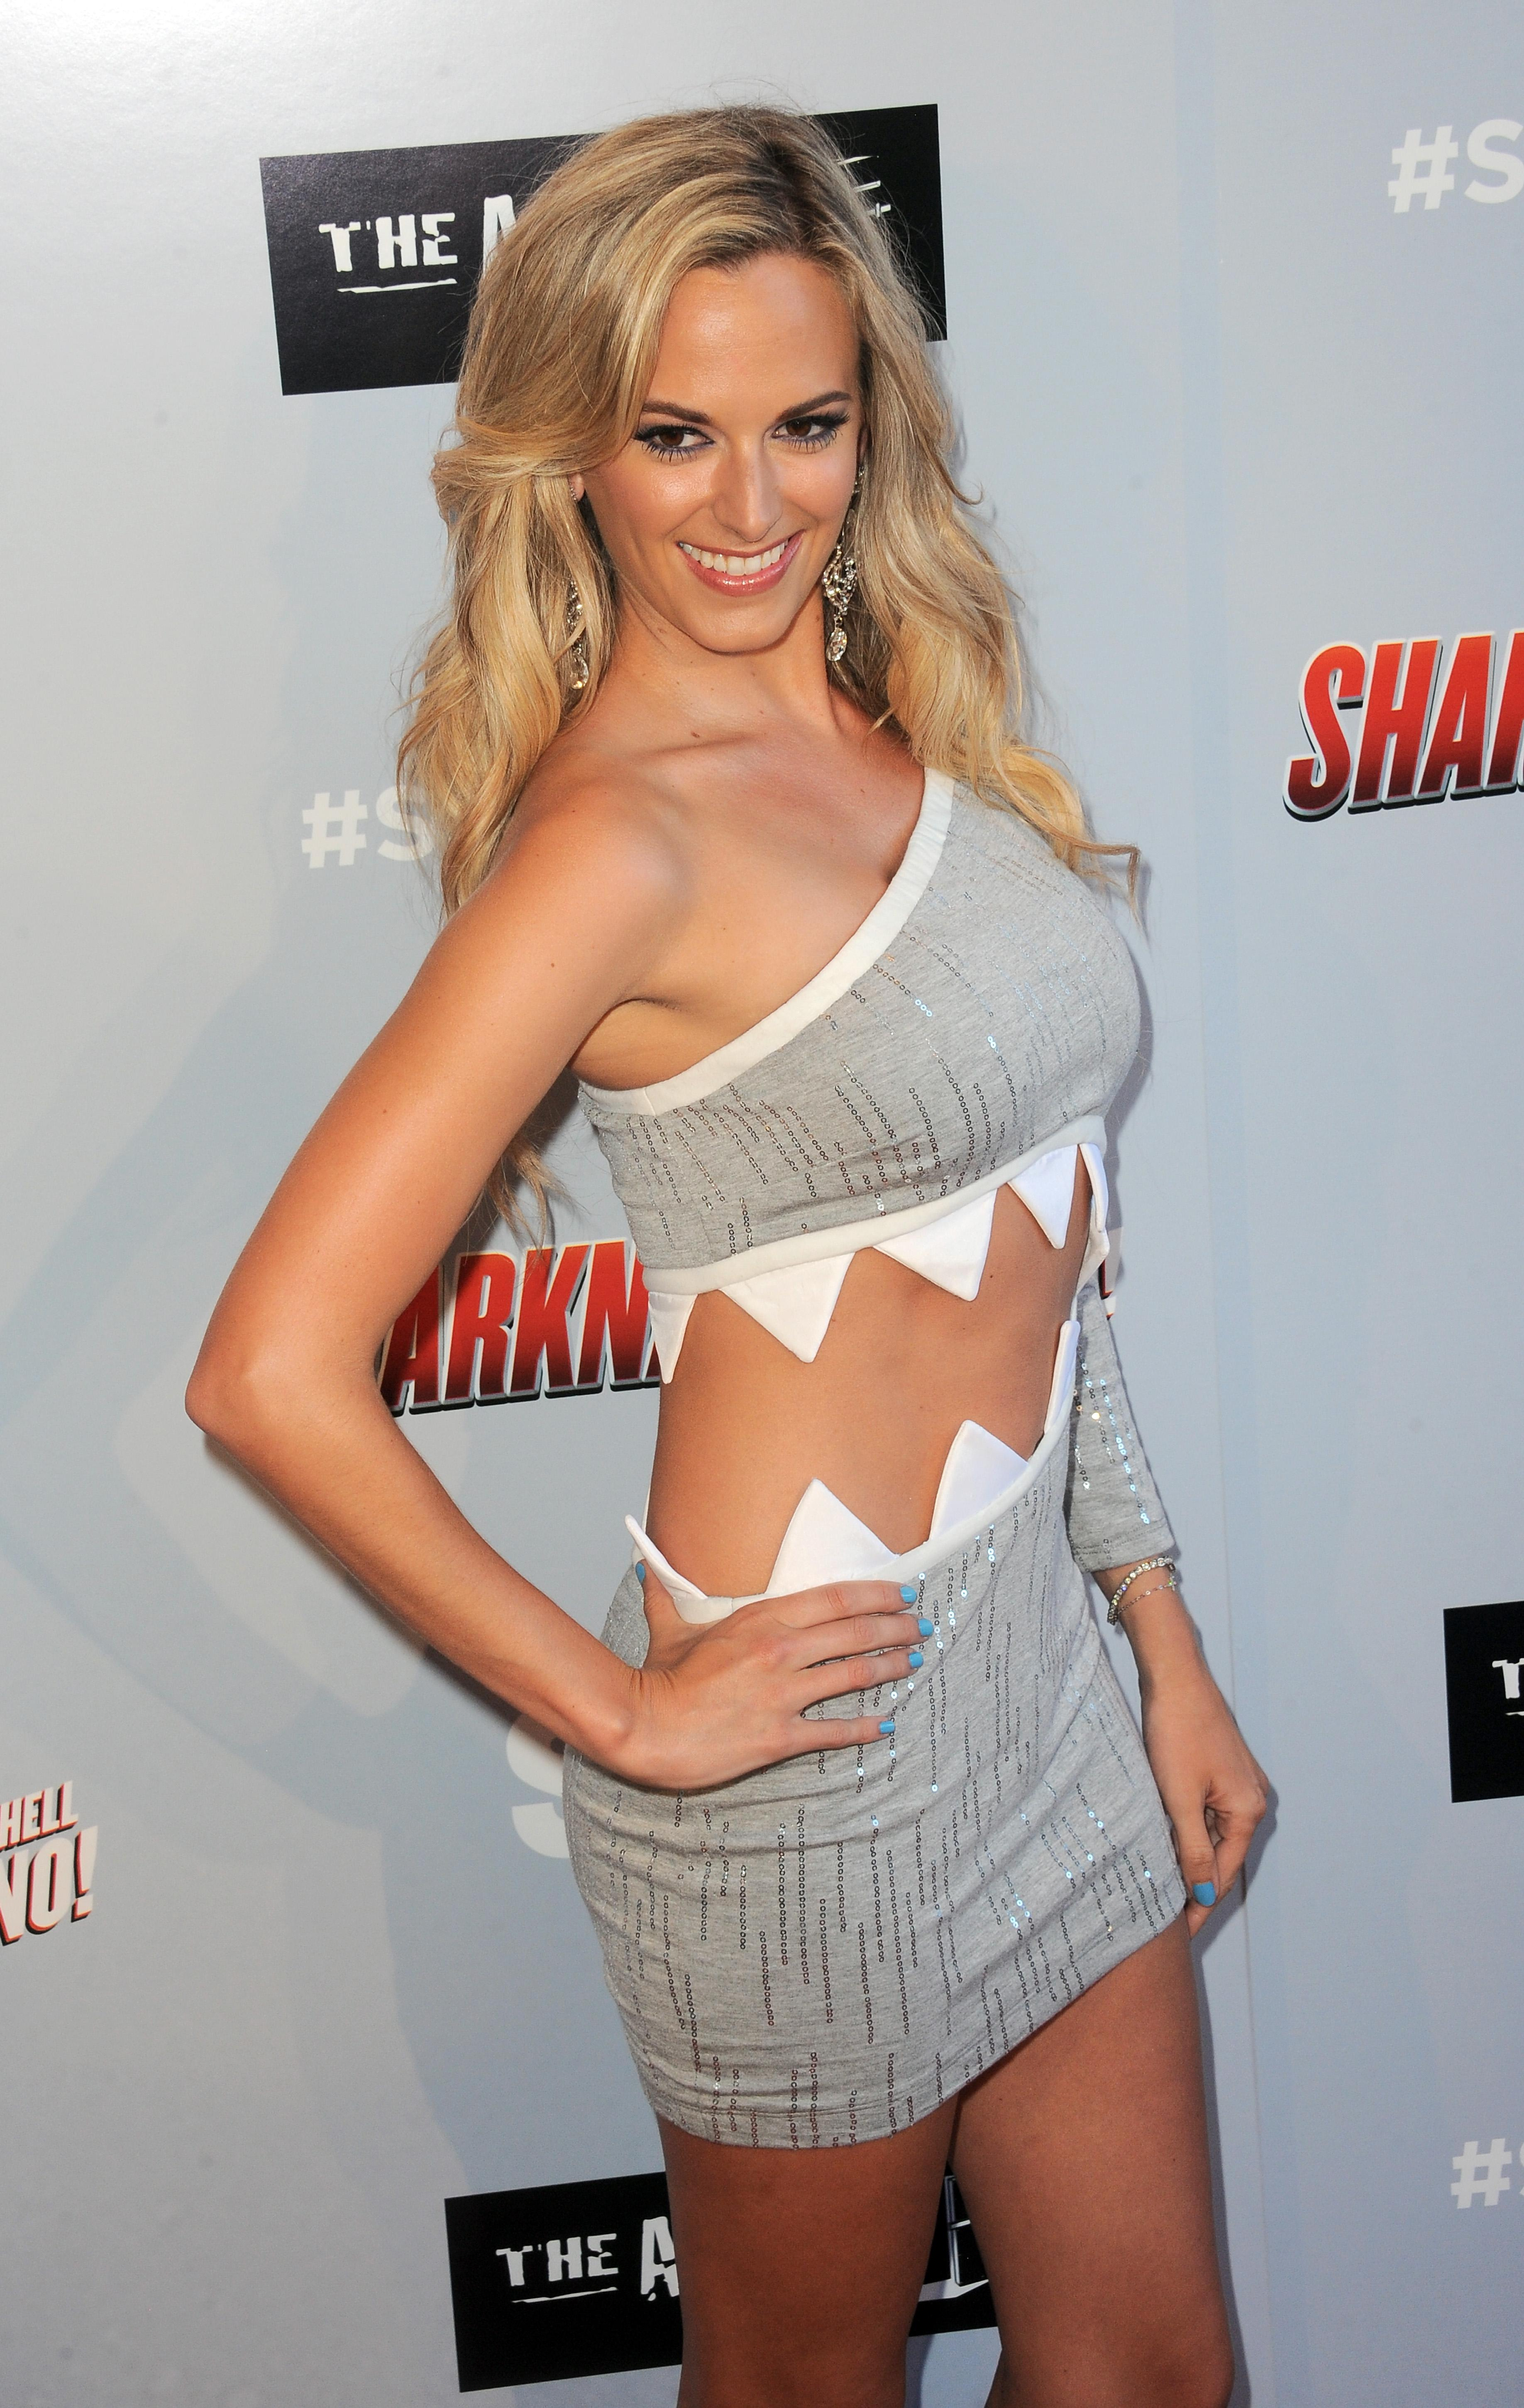 The 28-year-old beauty in a shark dress for the premiere of Sharknado 3: Oh Hell No!